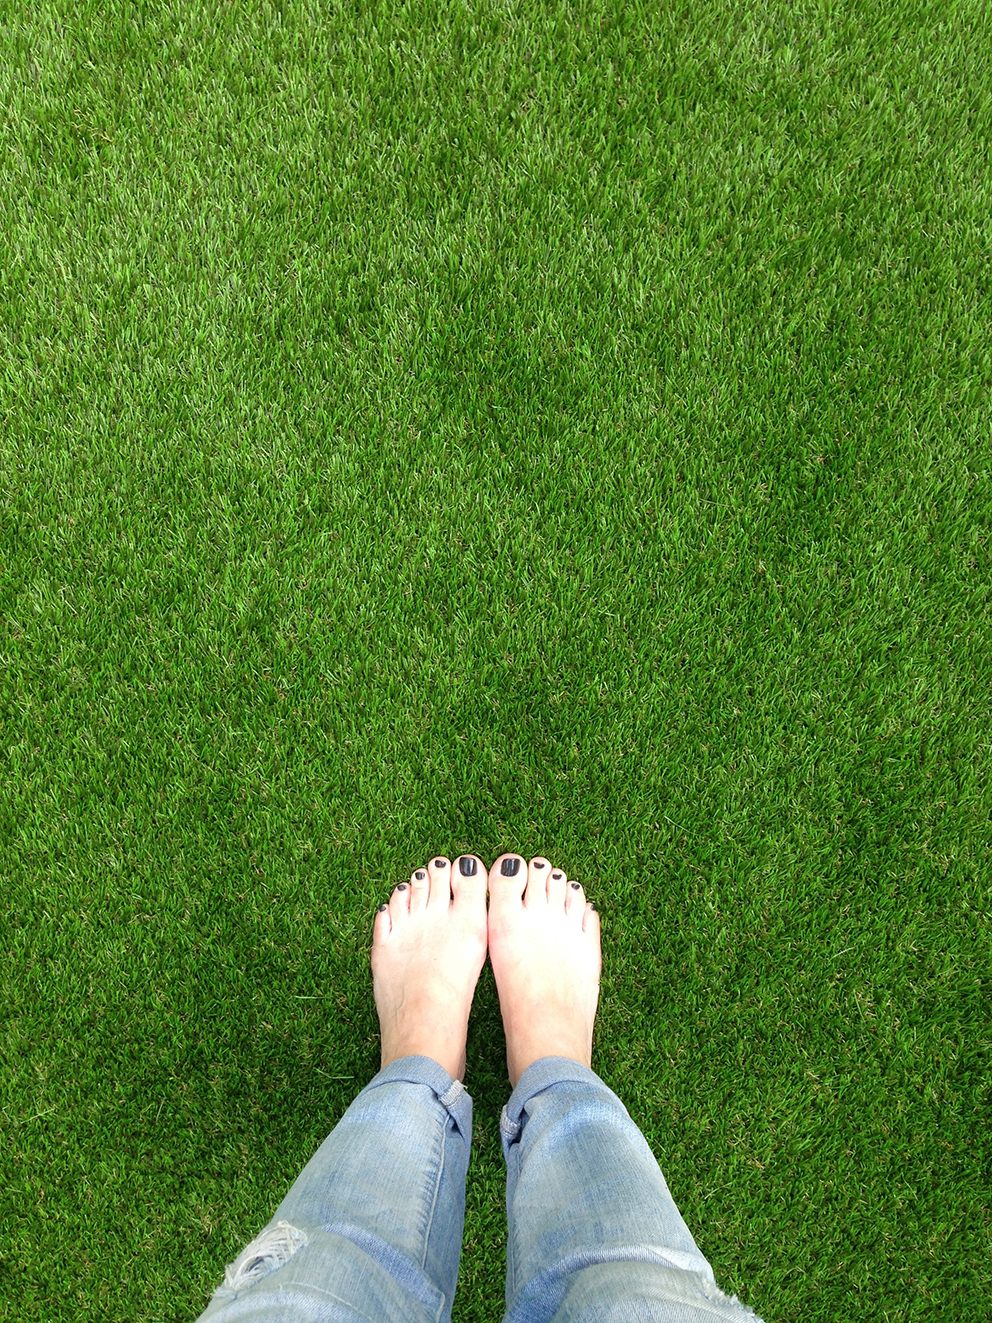 Feet on artificial lawn - French For Pineapple Blog